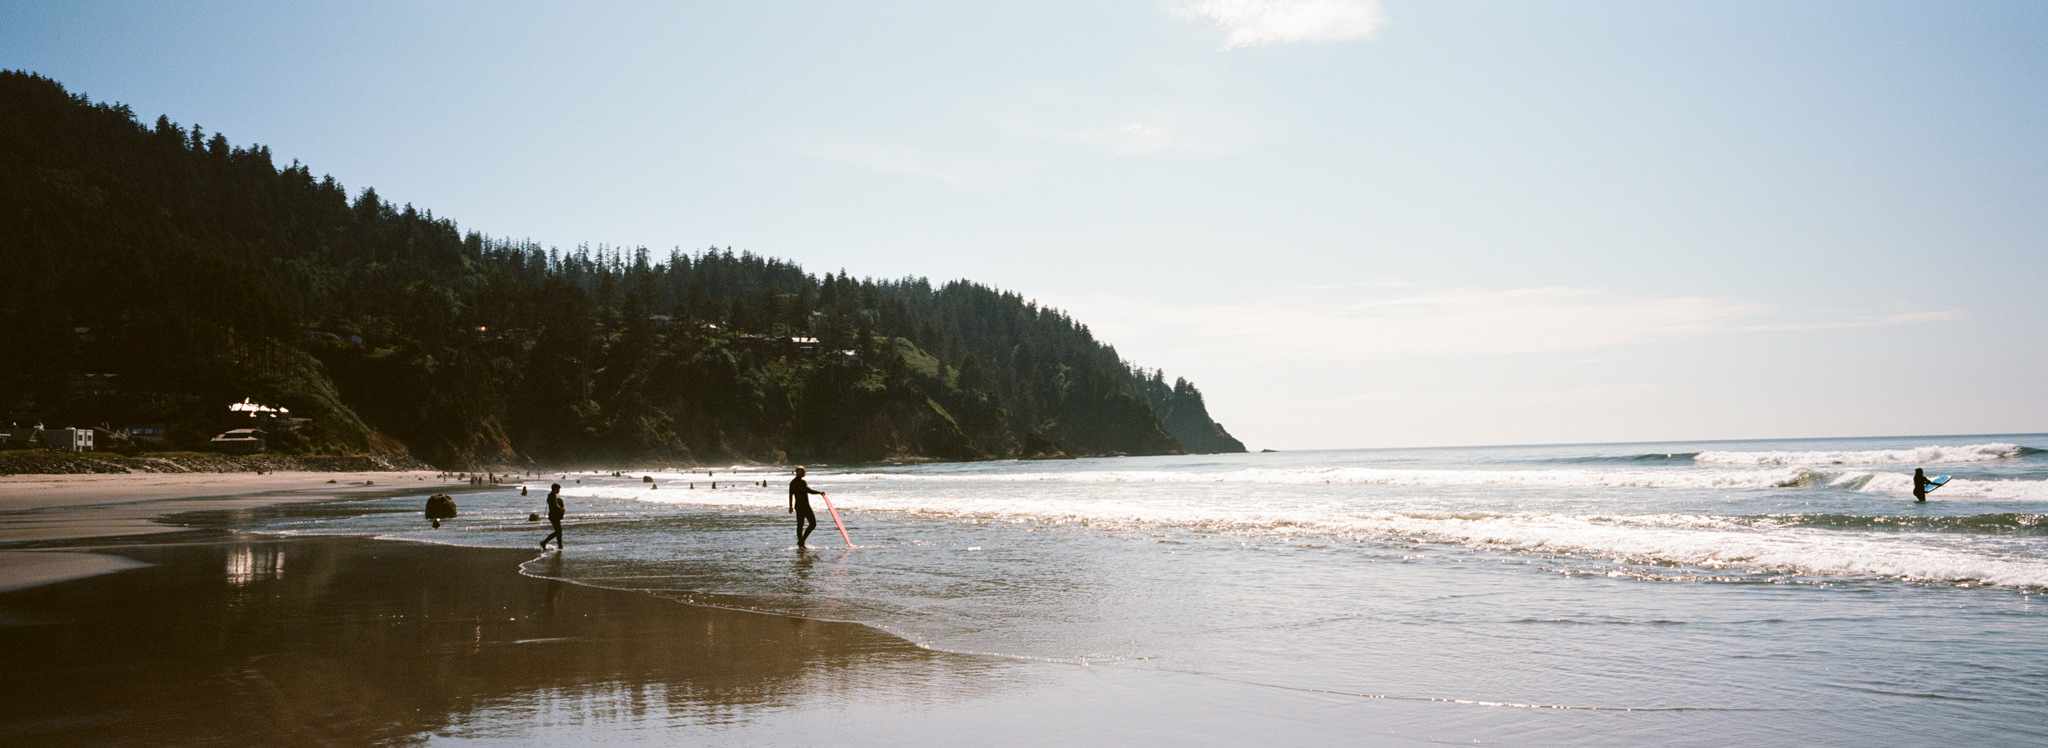 oregon-coast-thewarmtharoundyou-portland-wedding-photographers-100.jpg